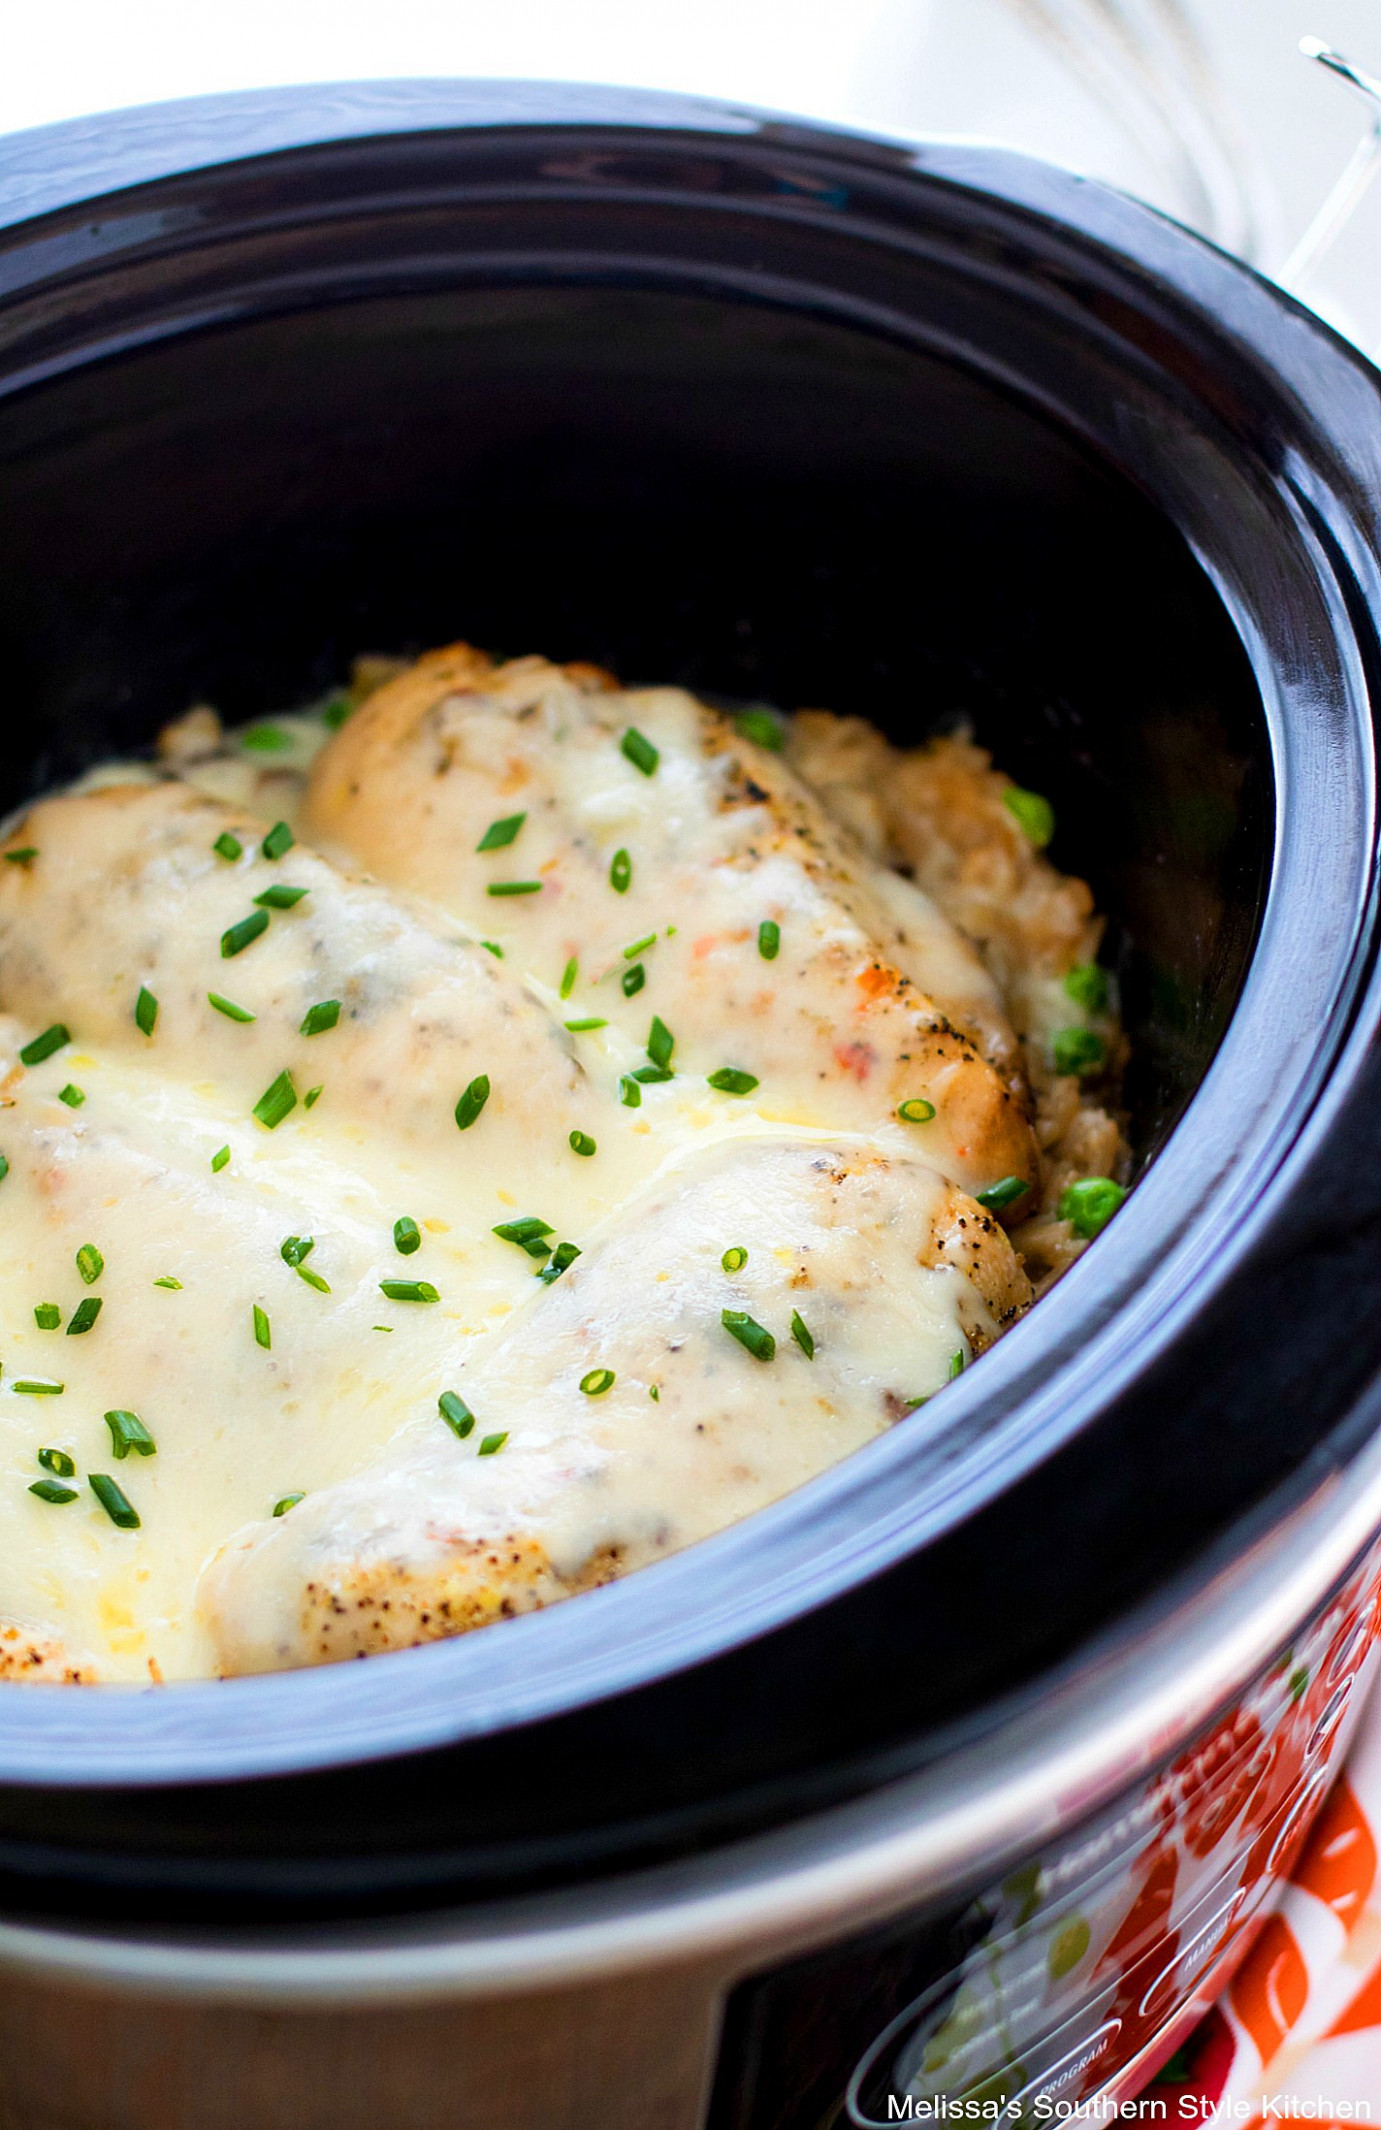 Crockpot Chicken and Rice - melissassouthernstylekitchen